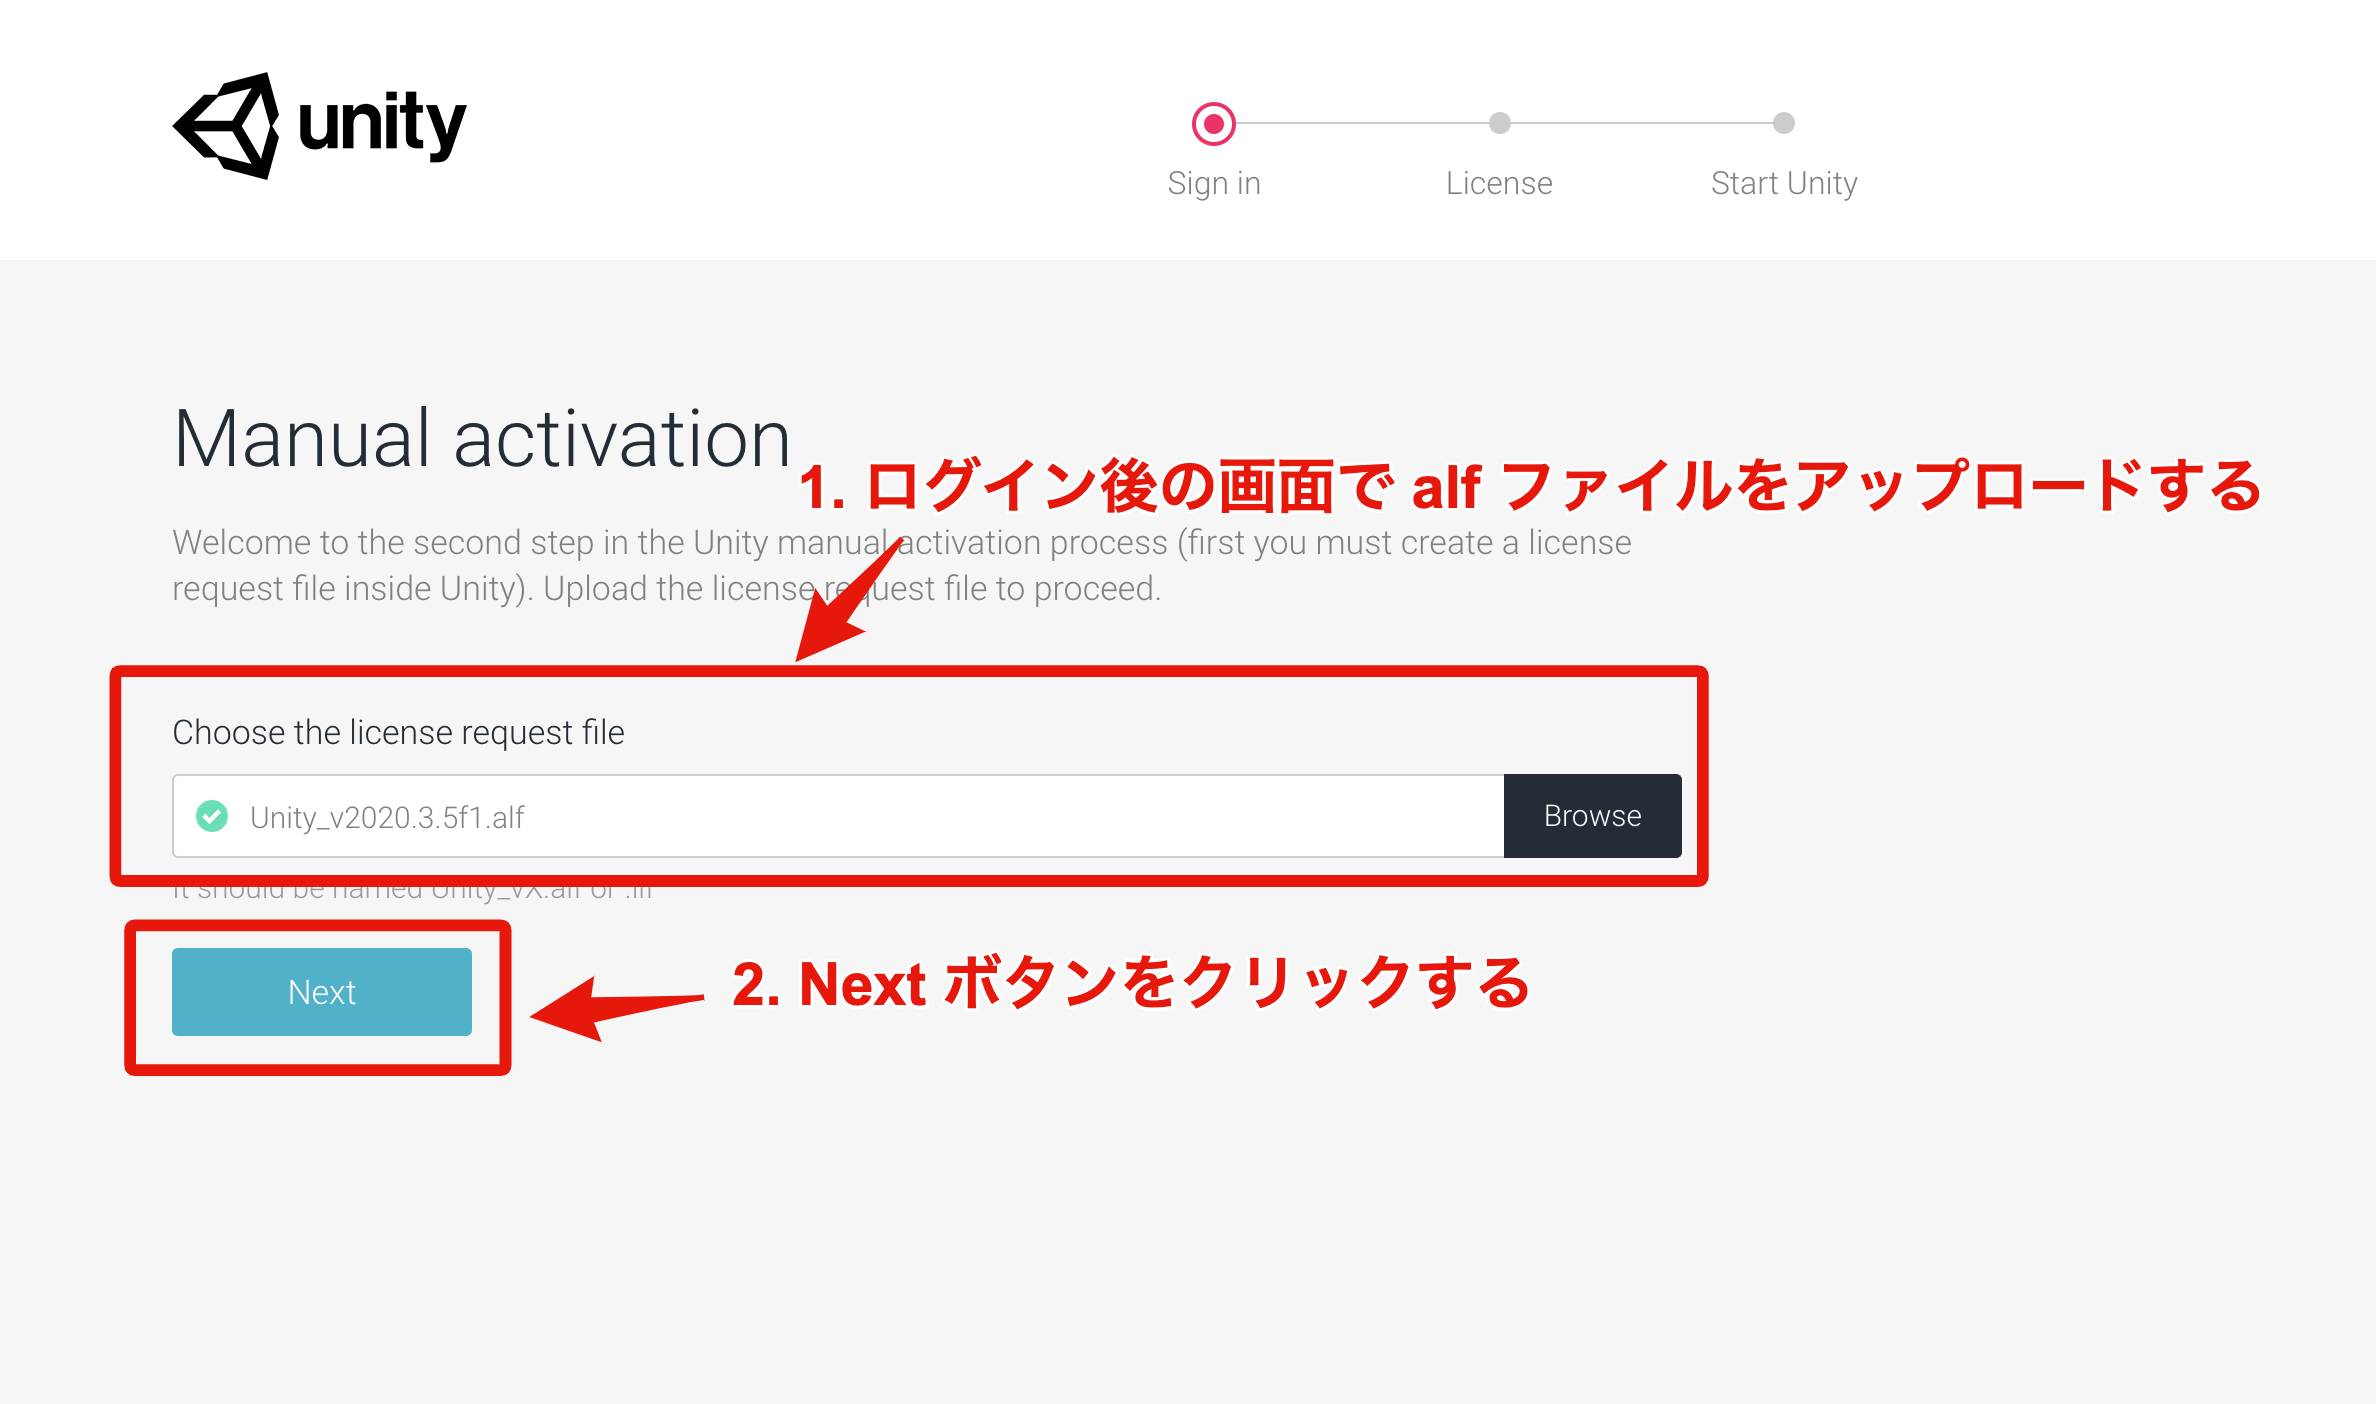 """4. <a href=""""https://license.unity3d.com"""">Unity license manual activation webpage</a> からログインして <code>alf</code> ファイルをアップロードする"""